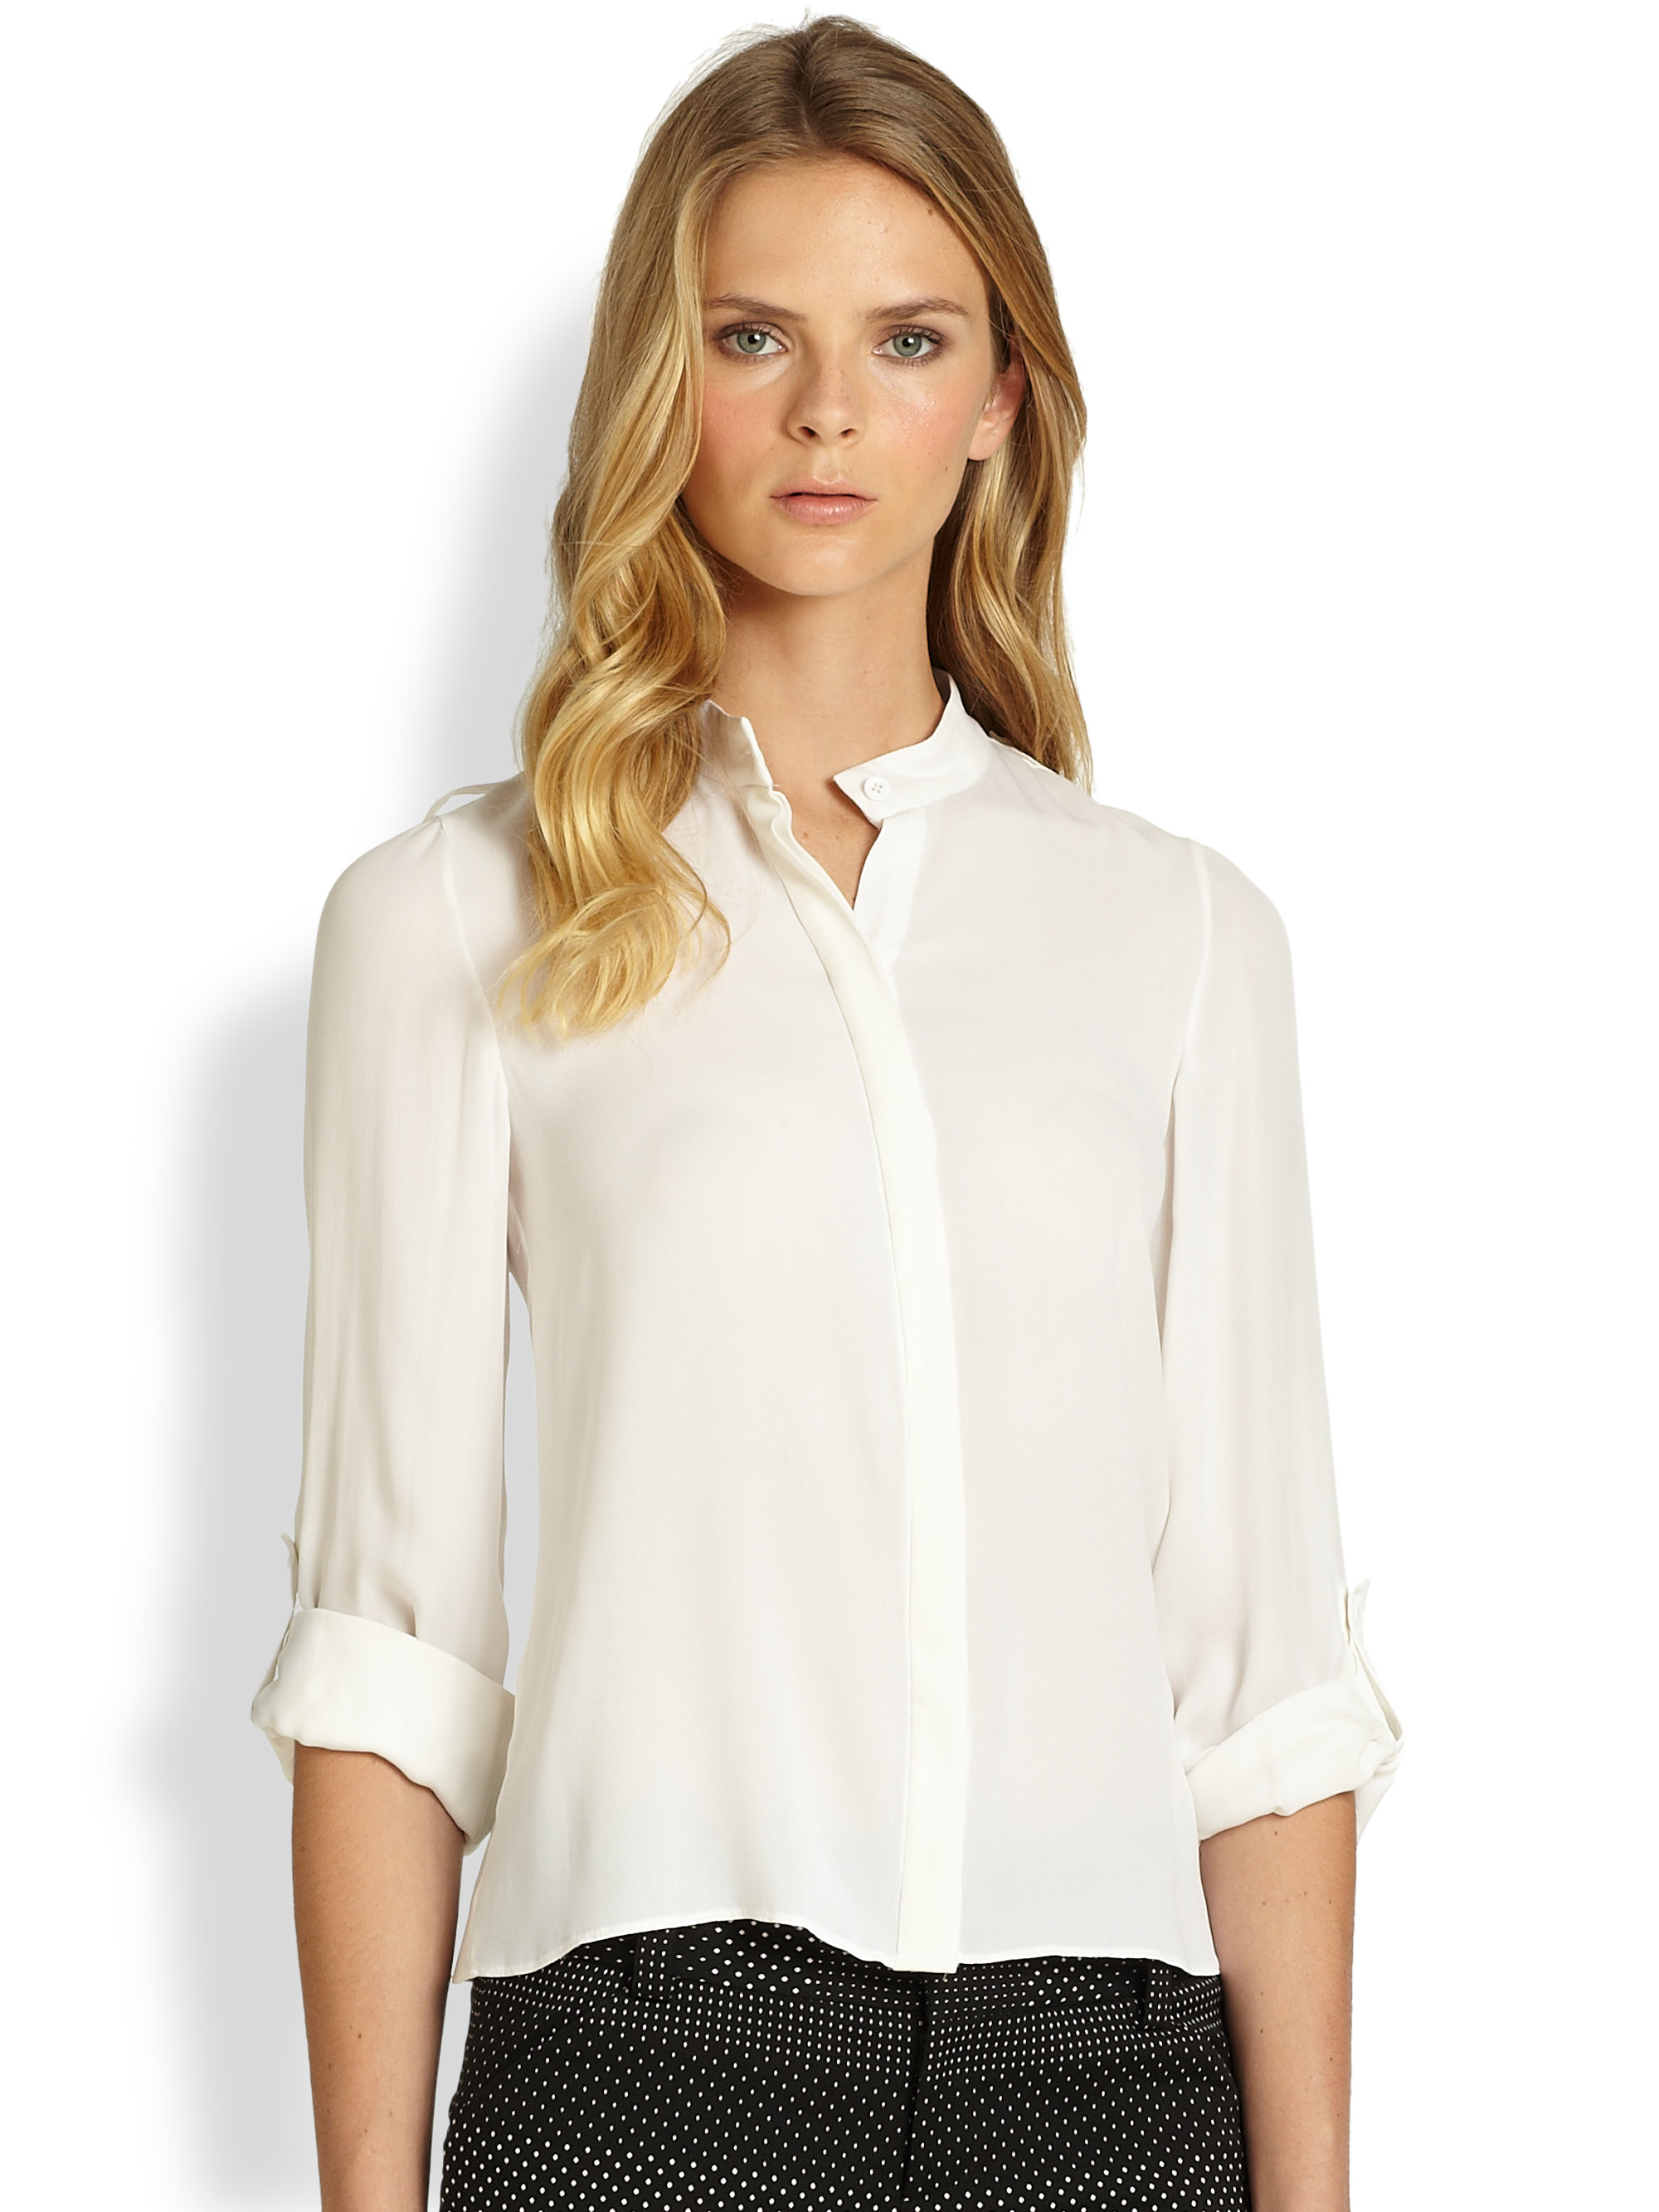 Buy cheap blouses online at angrydog.ga, we offer a great selection of women's blouses for different occasions.